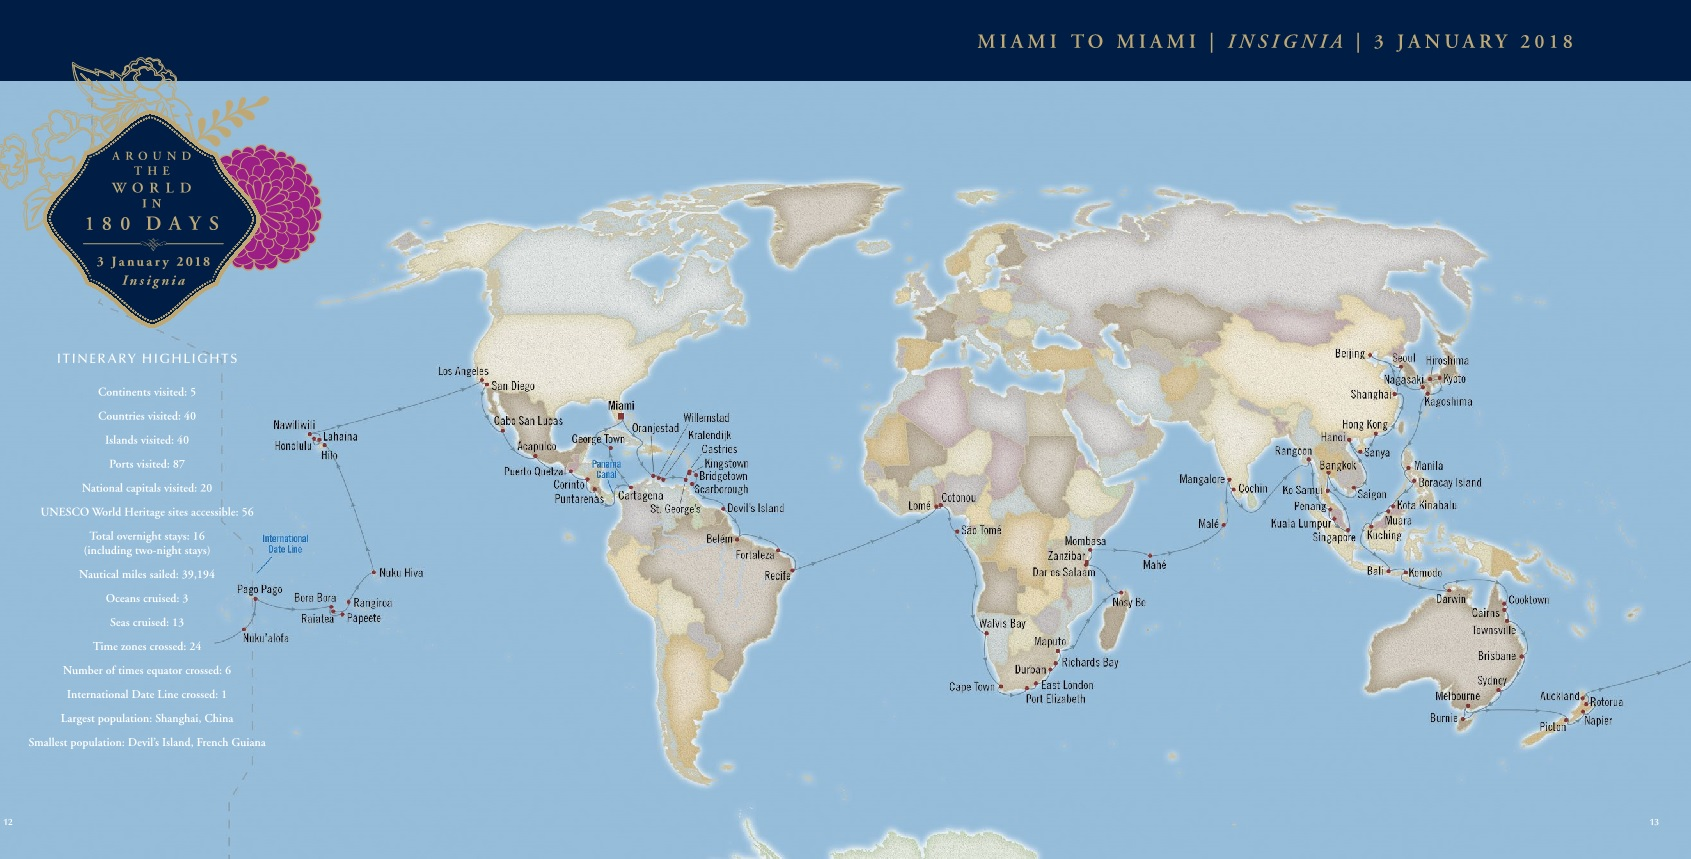 oceania insignia around the world 180 days 2